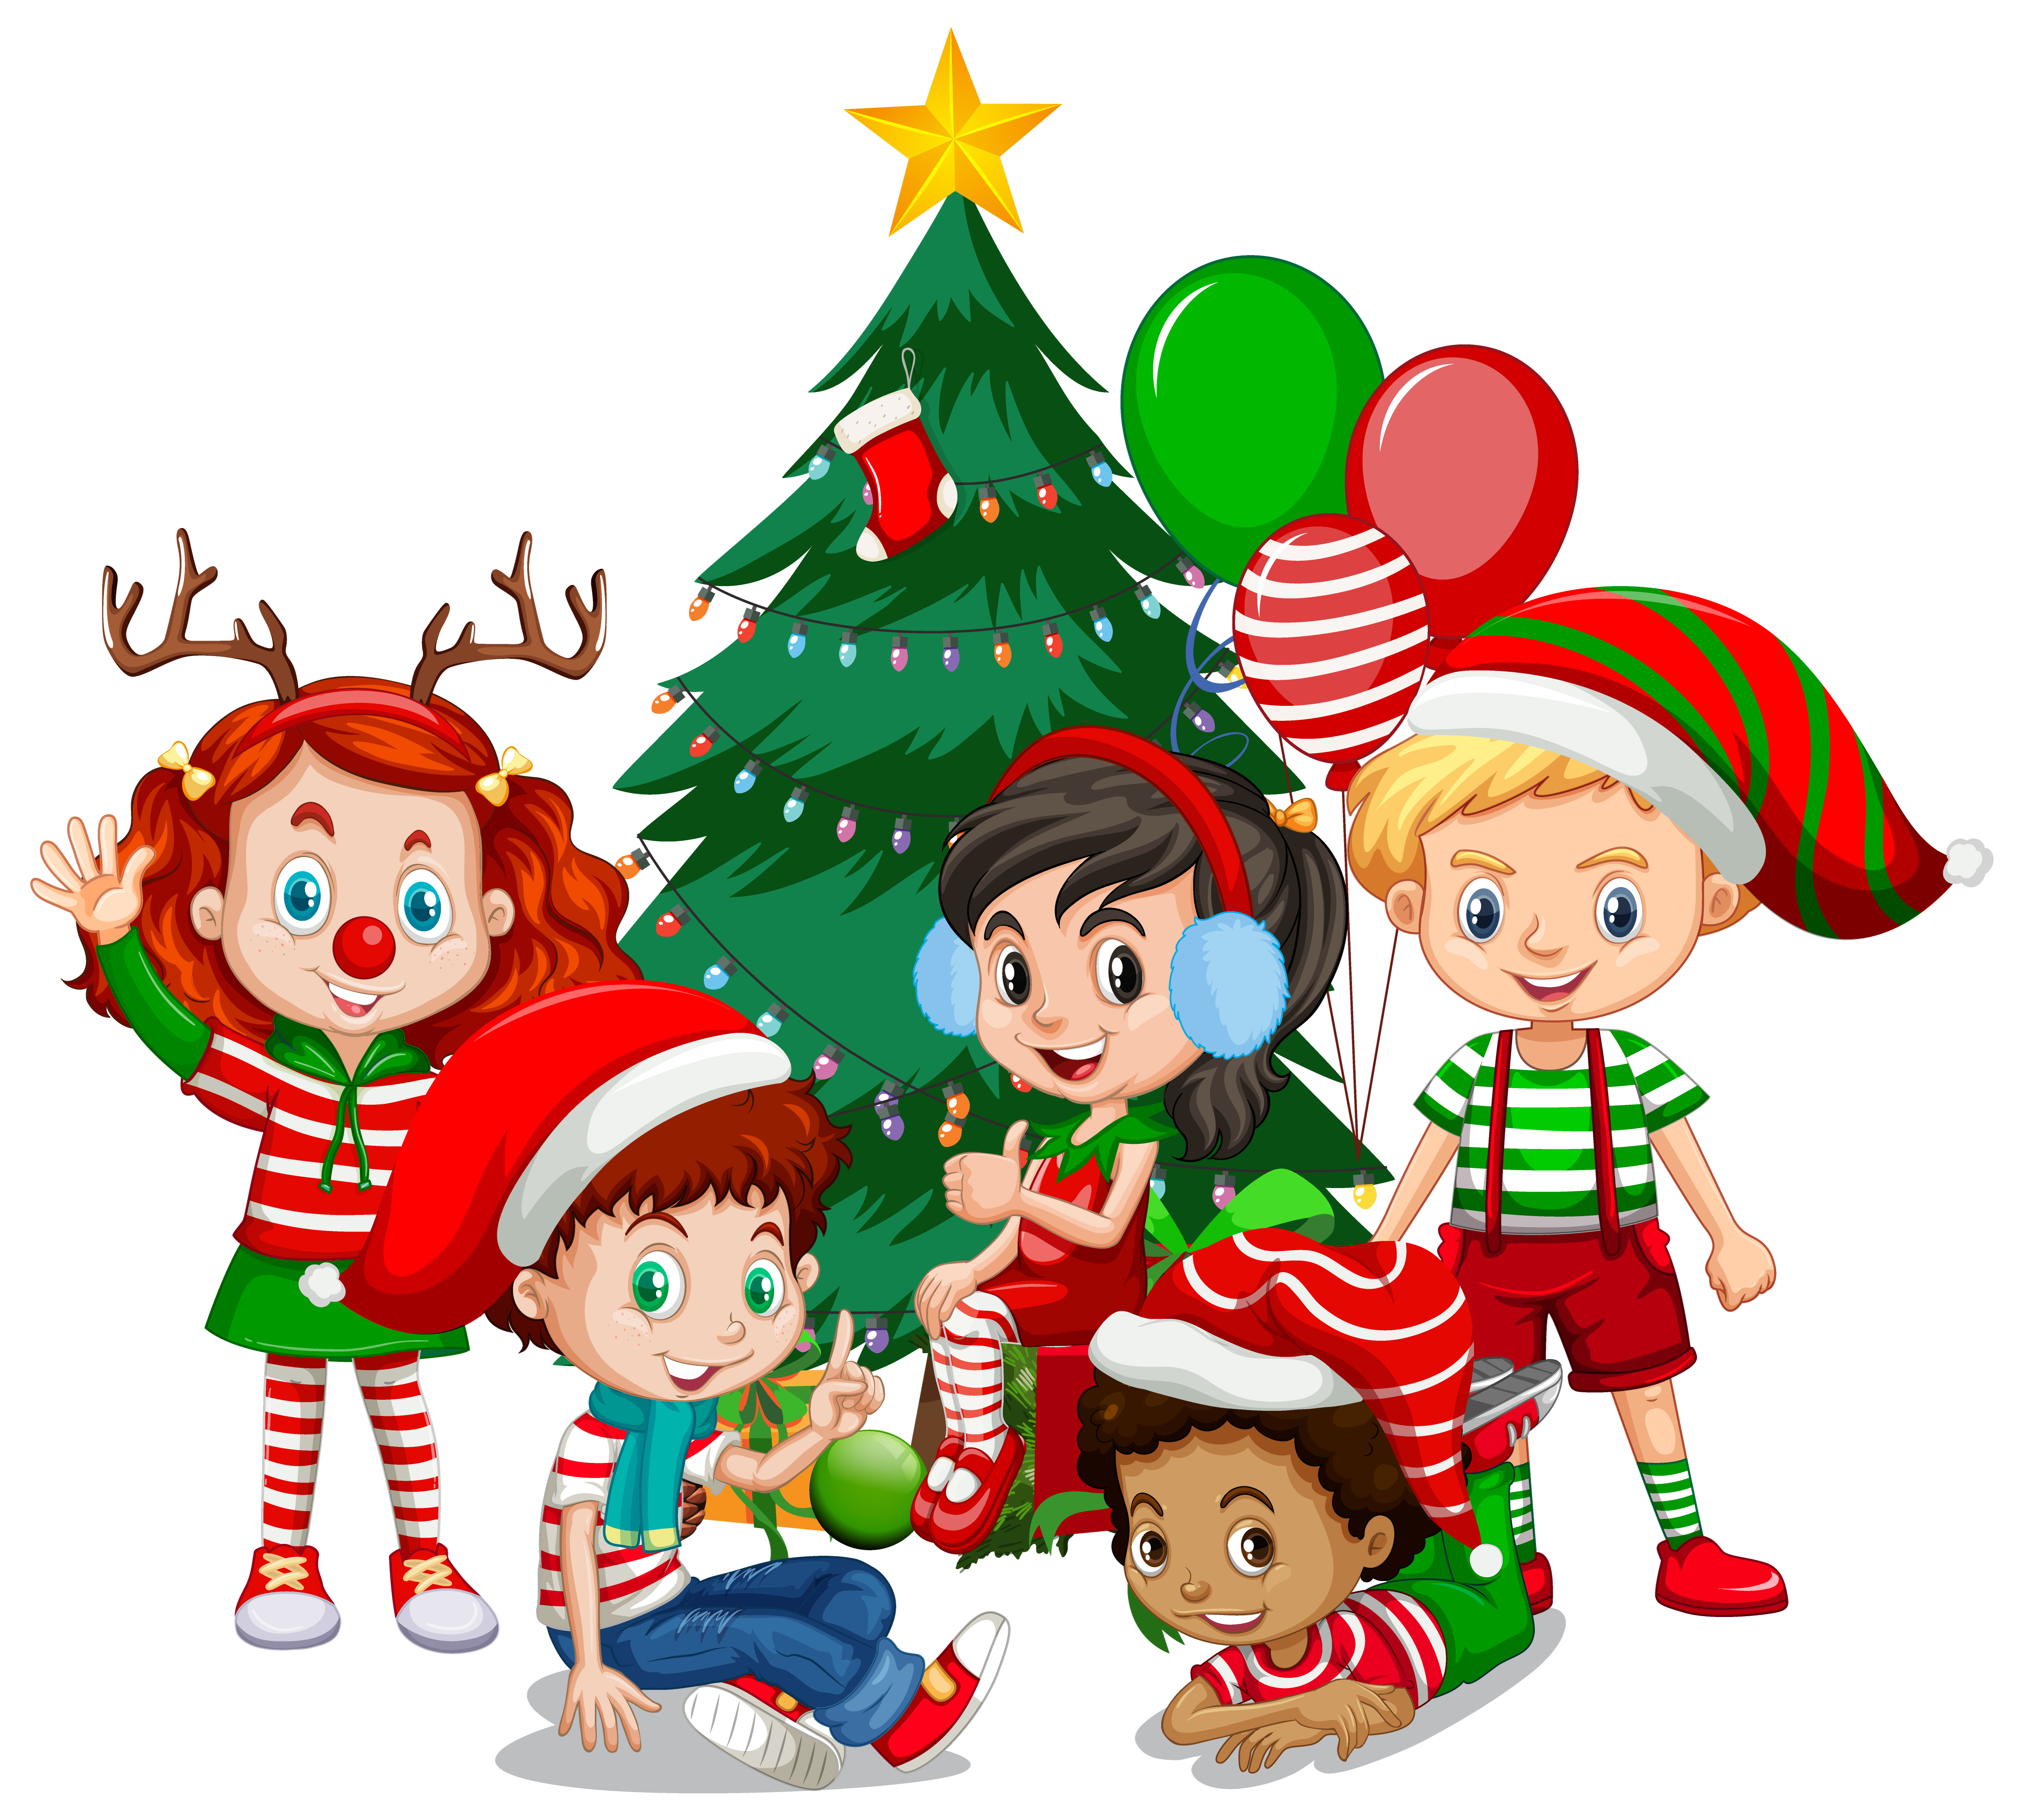 Children Wear Christmas Costume Cartoon Character With Christmas Tree On White Background Download Free Vectors Clipart Graphics Vector Art